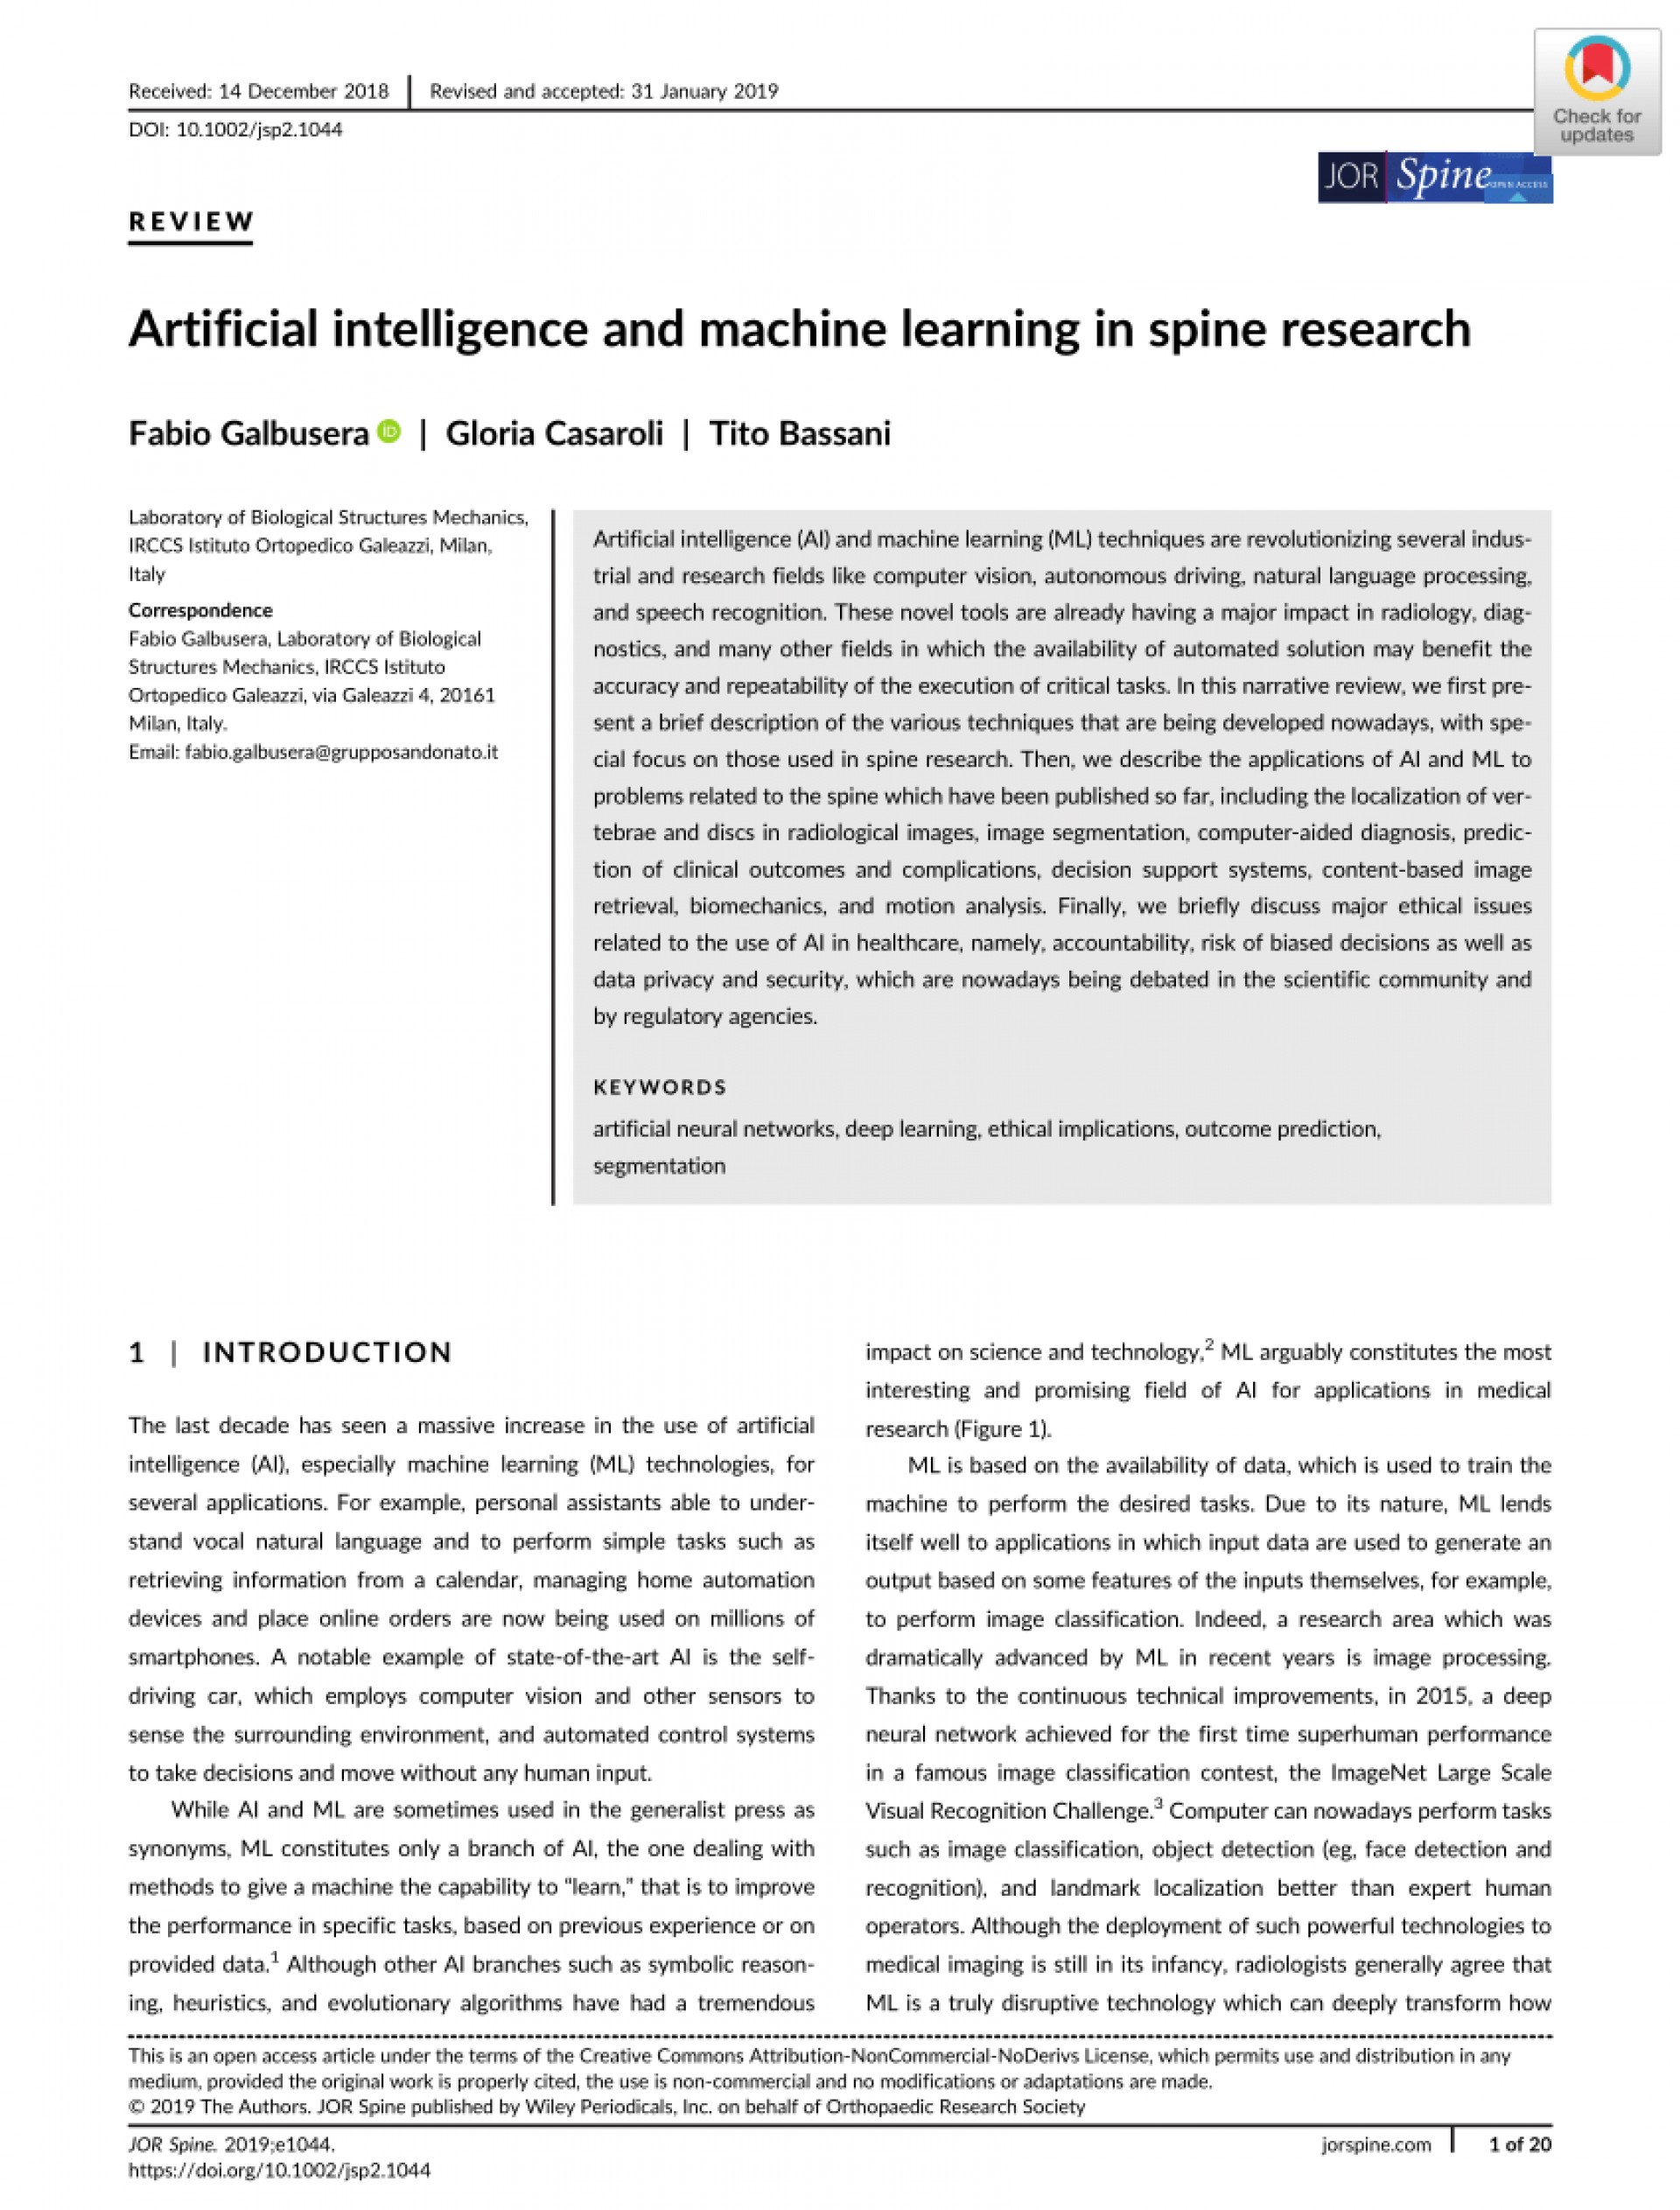 006 Artificial Intelligence Research Paper Awful 2019 1920